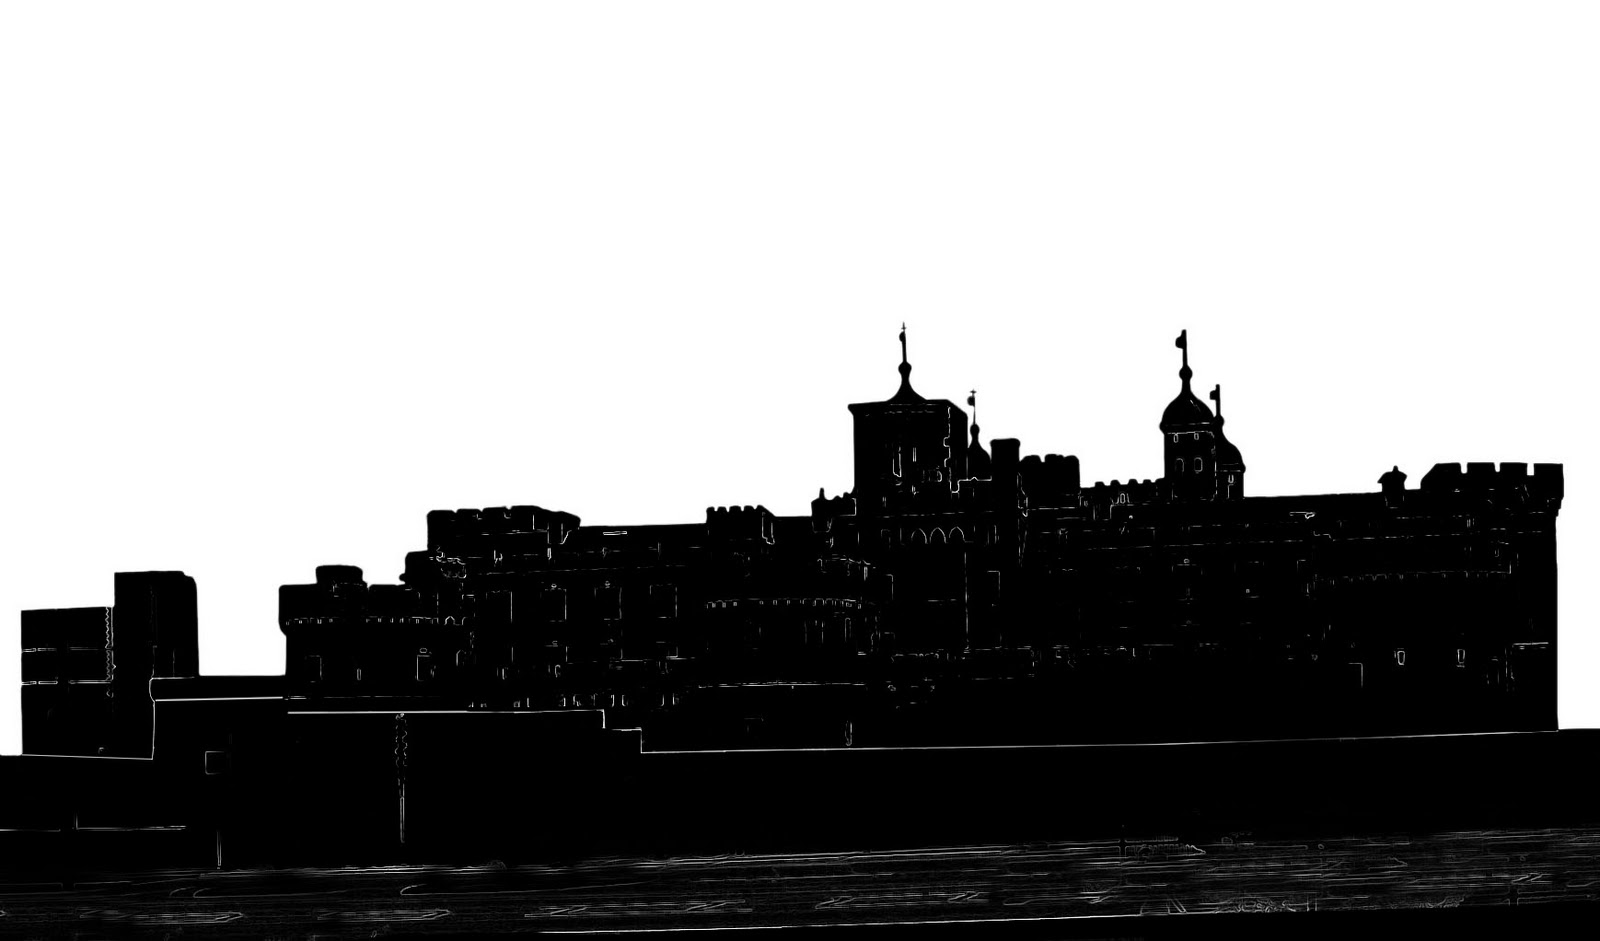 1600x941 Stock Pictures Tower Of London Photograph, Sketch And Silhouette